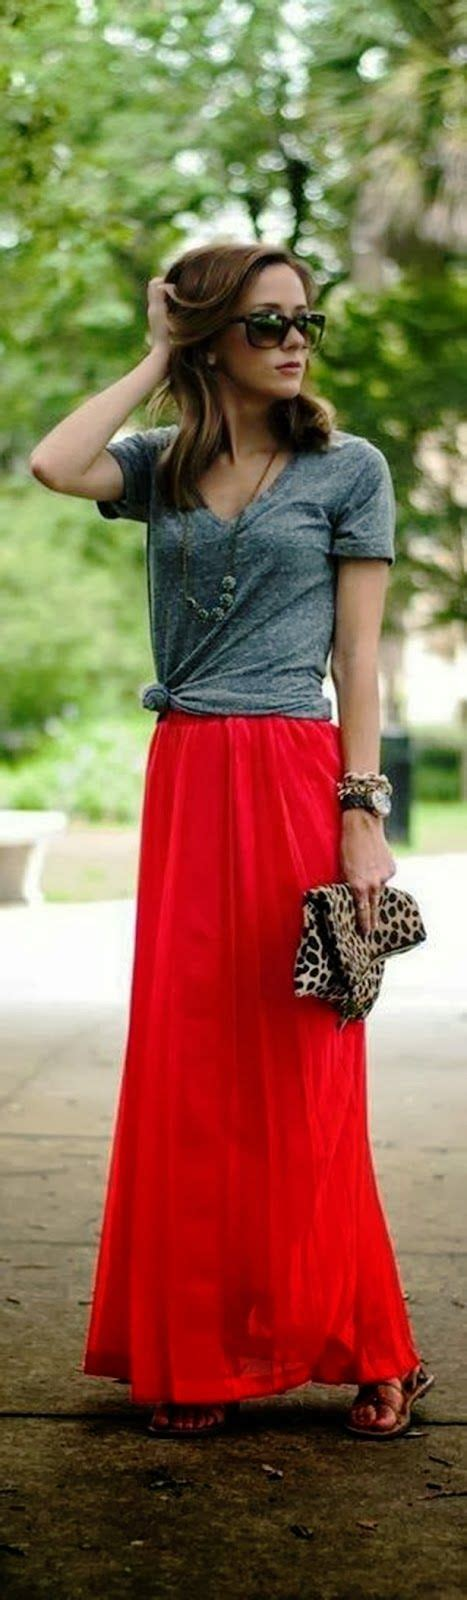 gray blouse with flowy maxi skirt my style